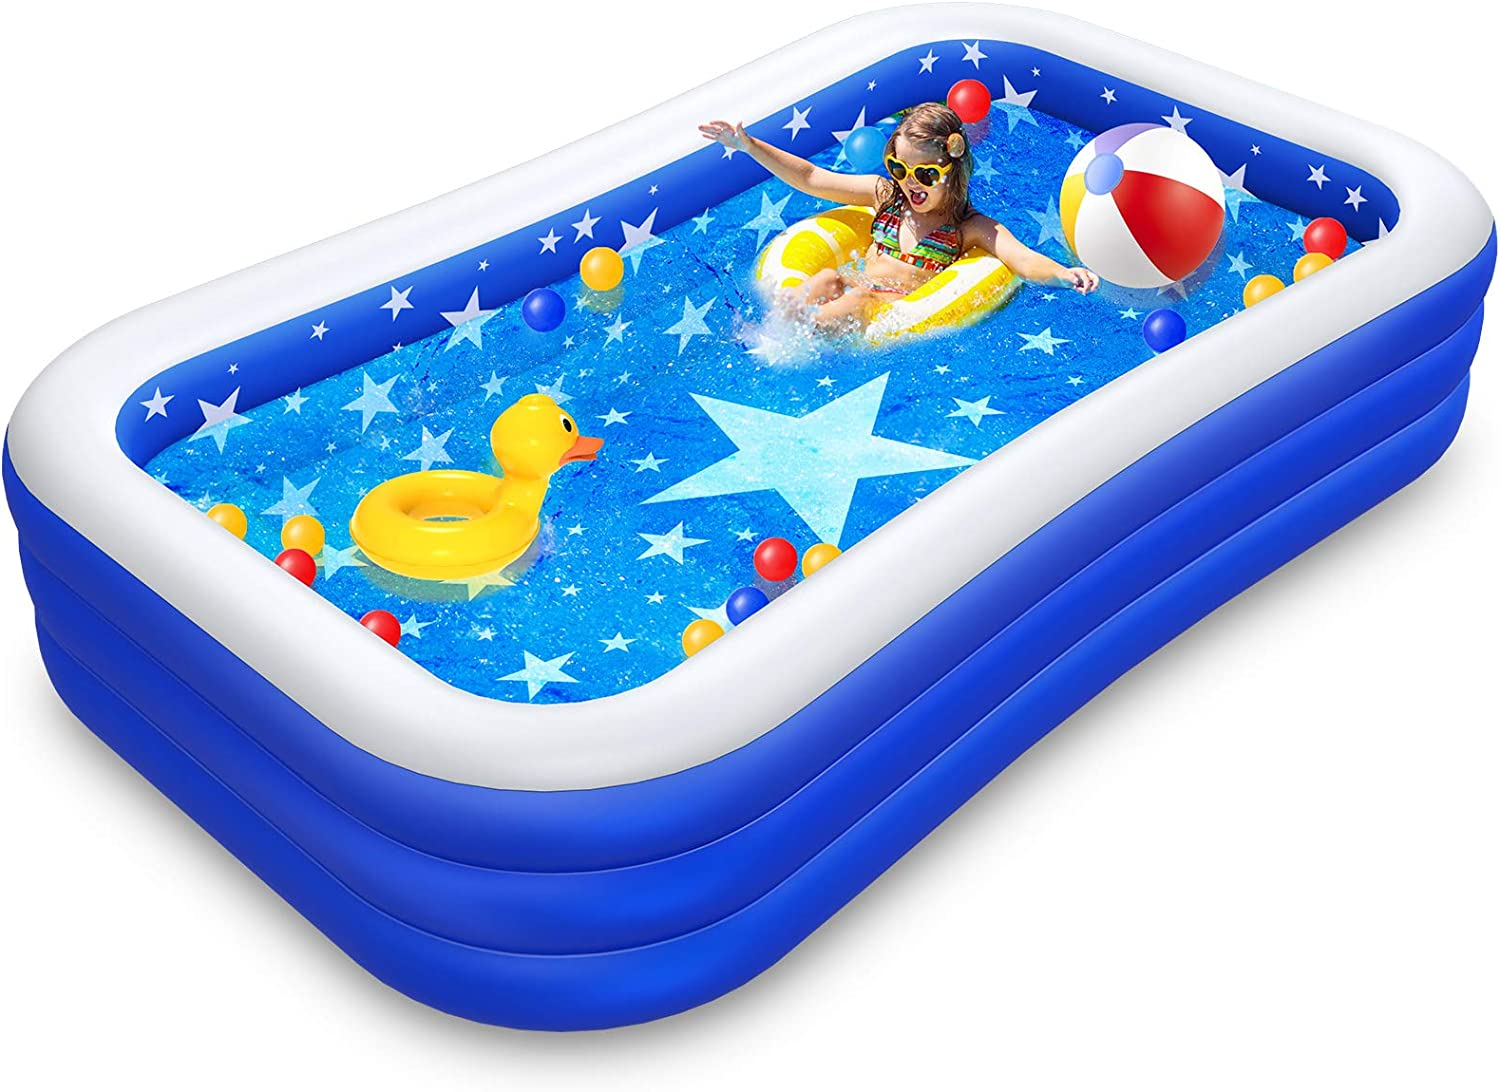 Inflatable Pool Mesa Mall Family Swimming for Kids Max 77% OFF Infant Adults